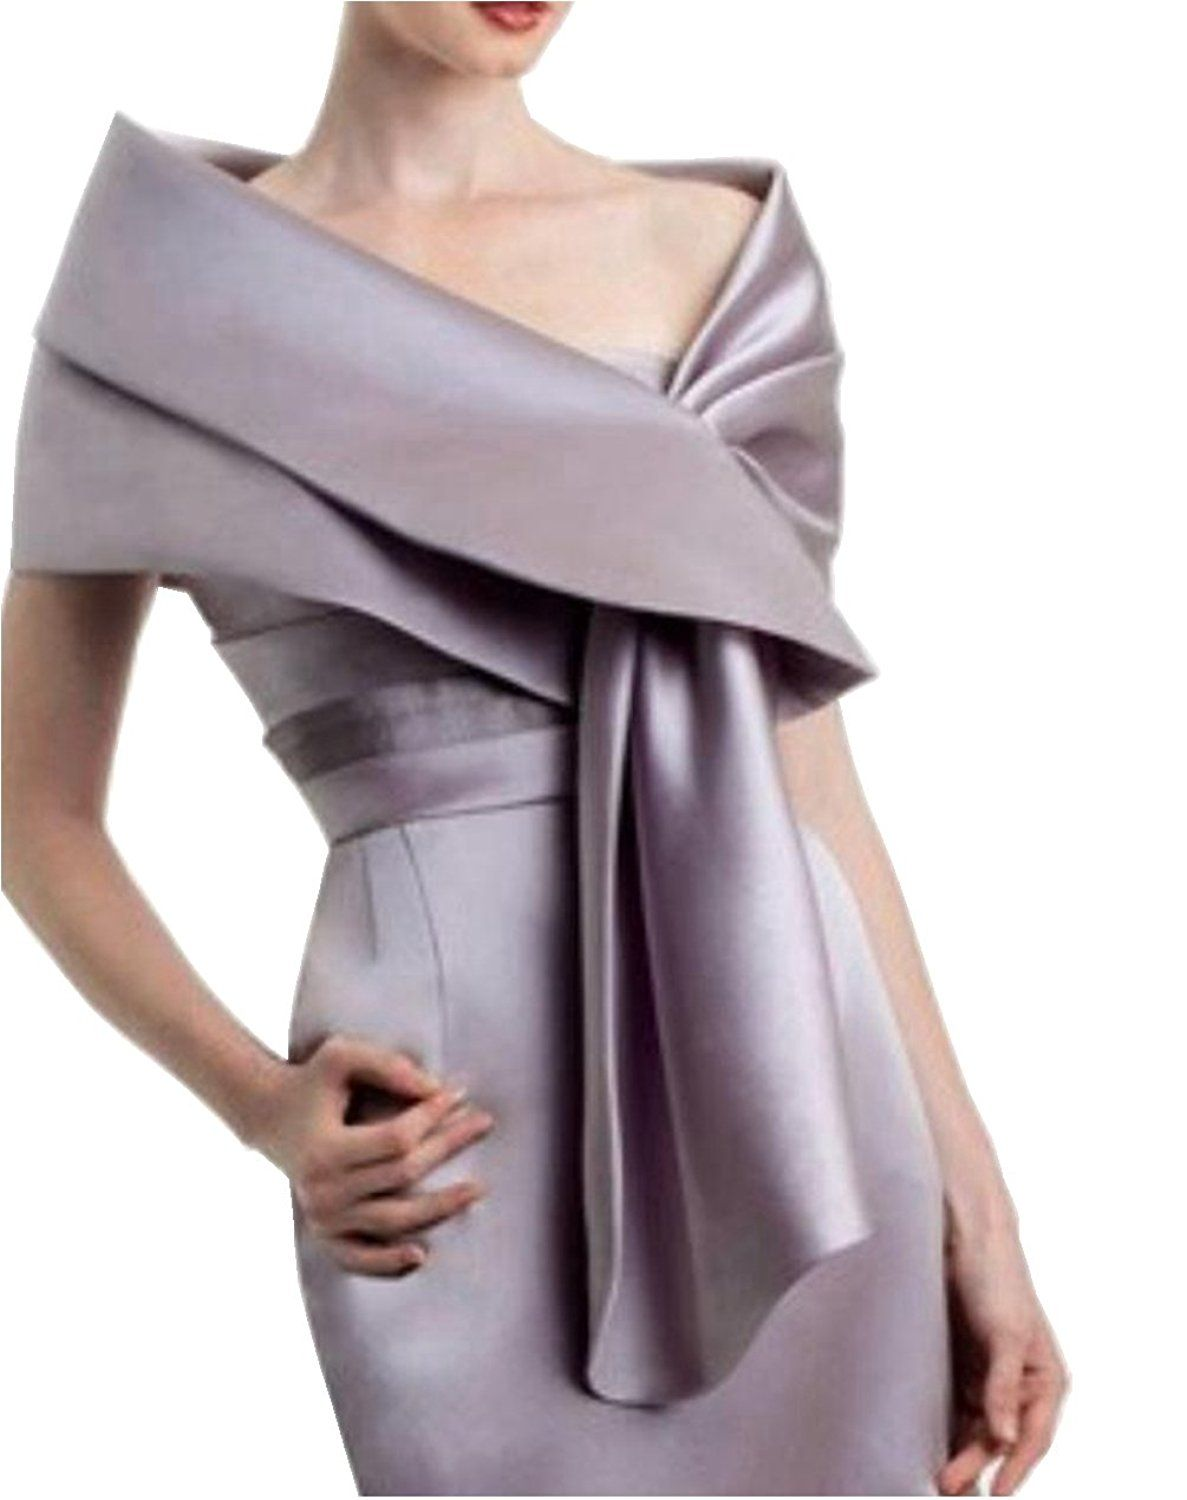 Image Result For Gown With Wrap Shawl Different Color Shawls